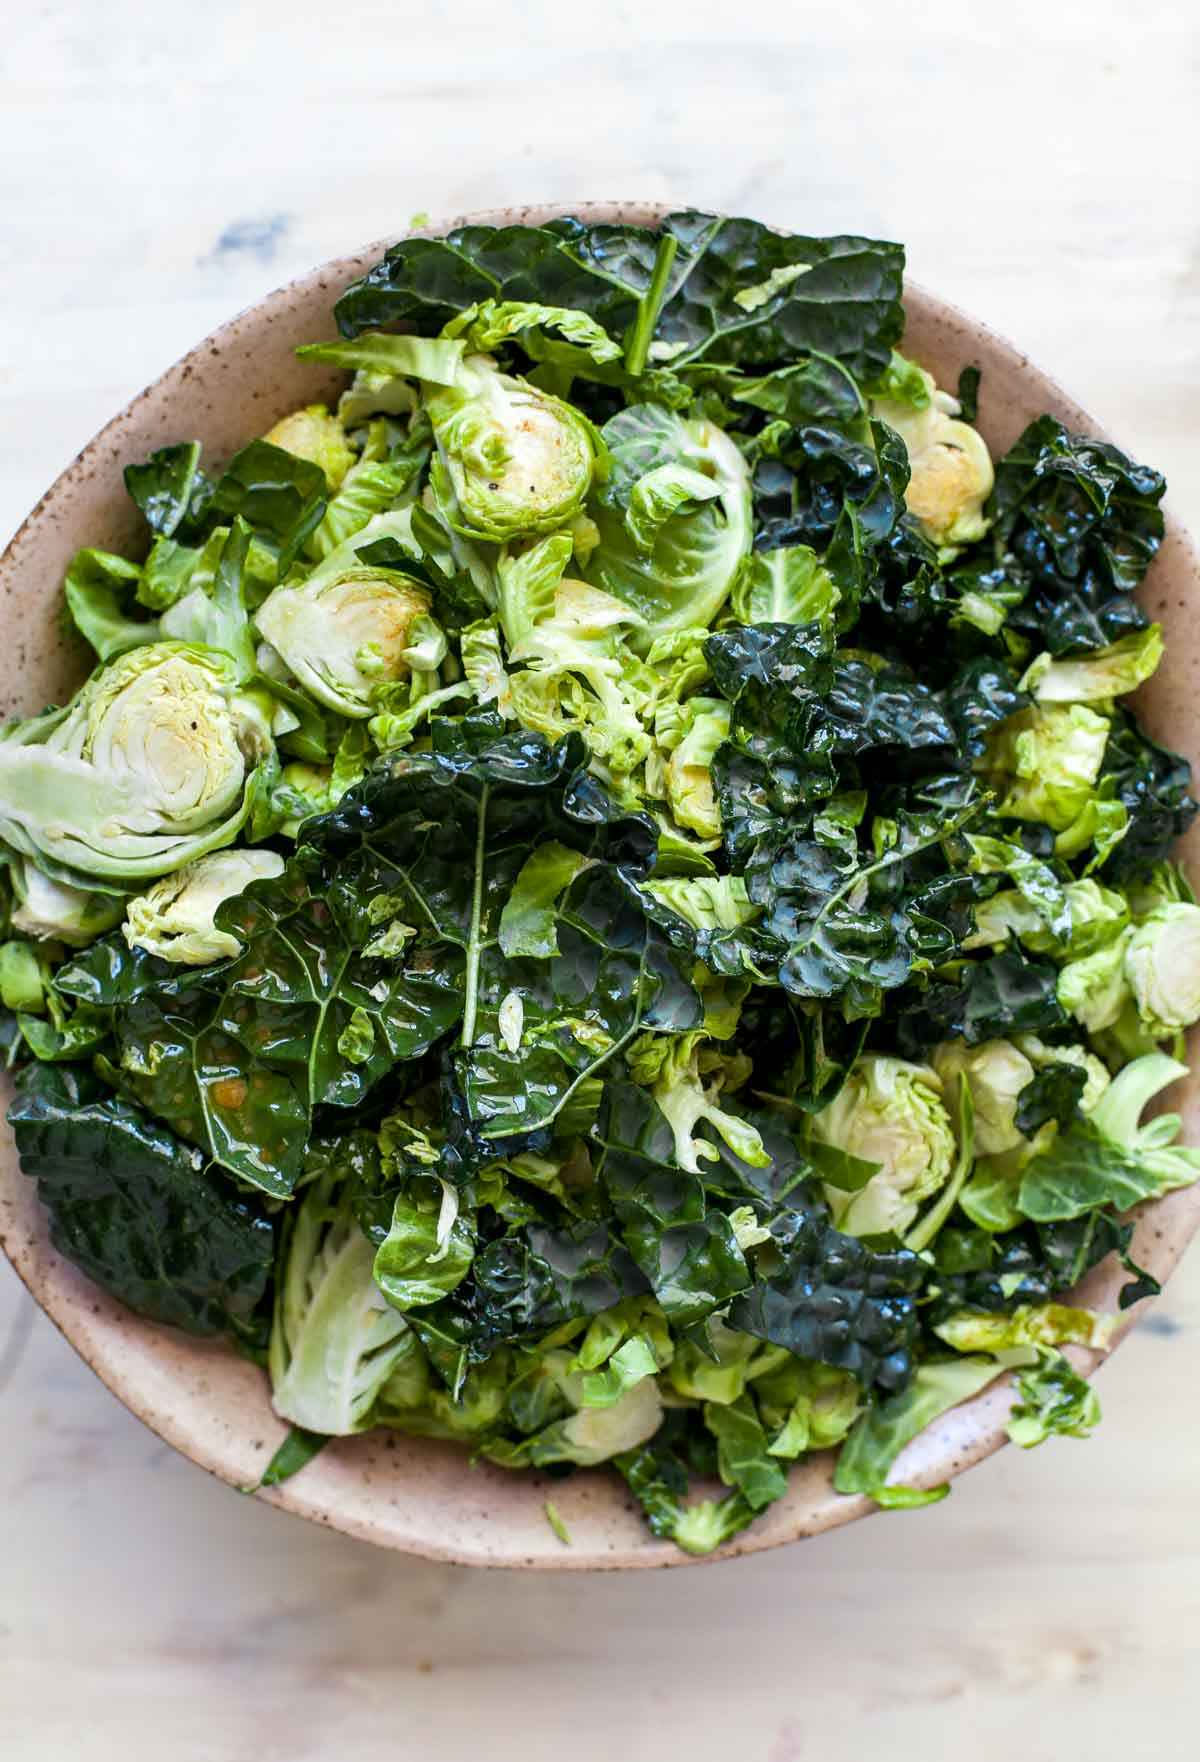 Shredded Brussels sprouts and chopped kale in a large tan bowl